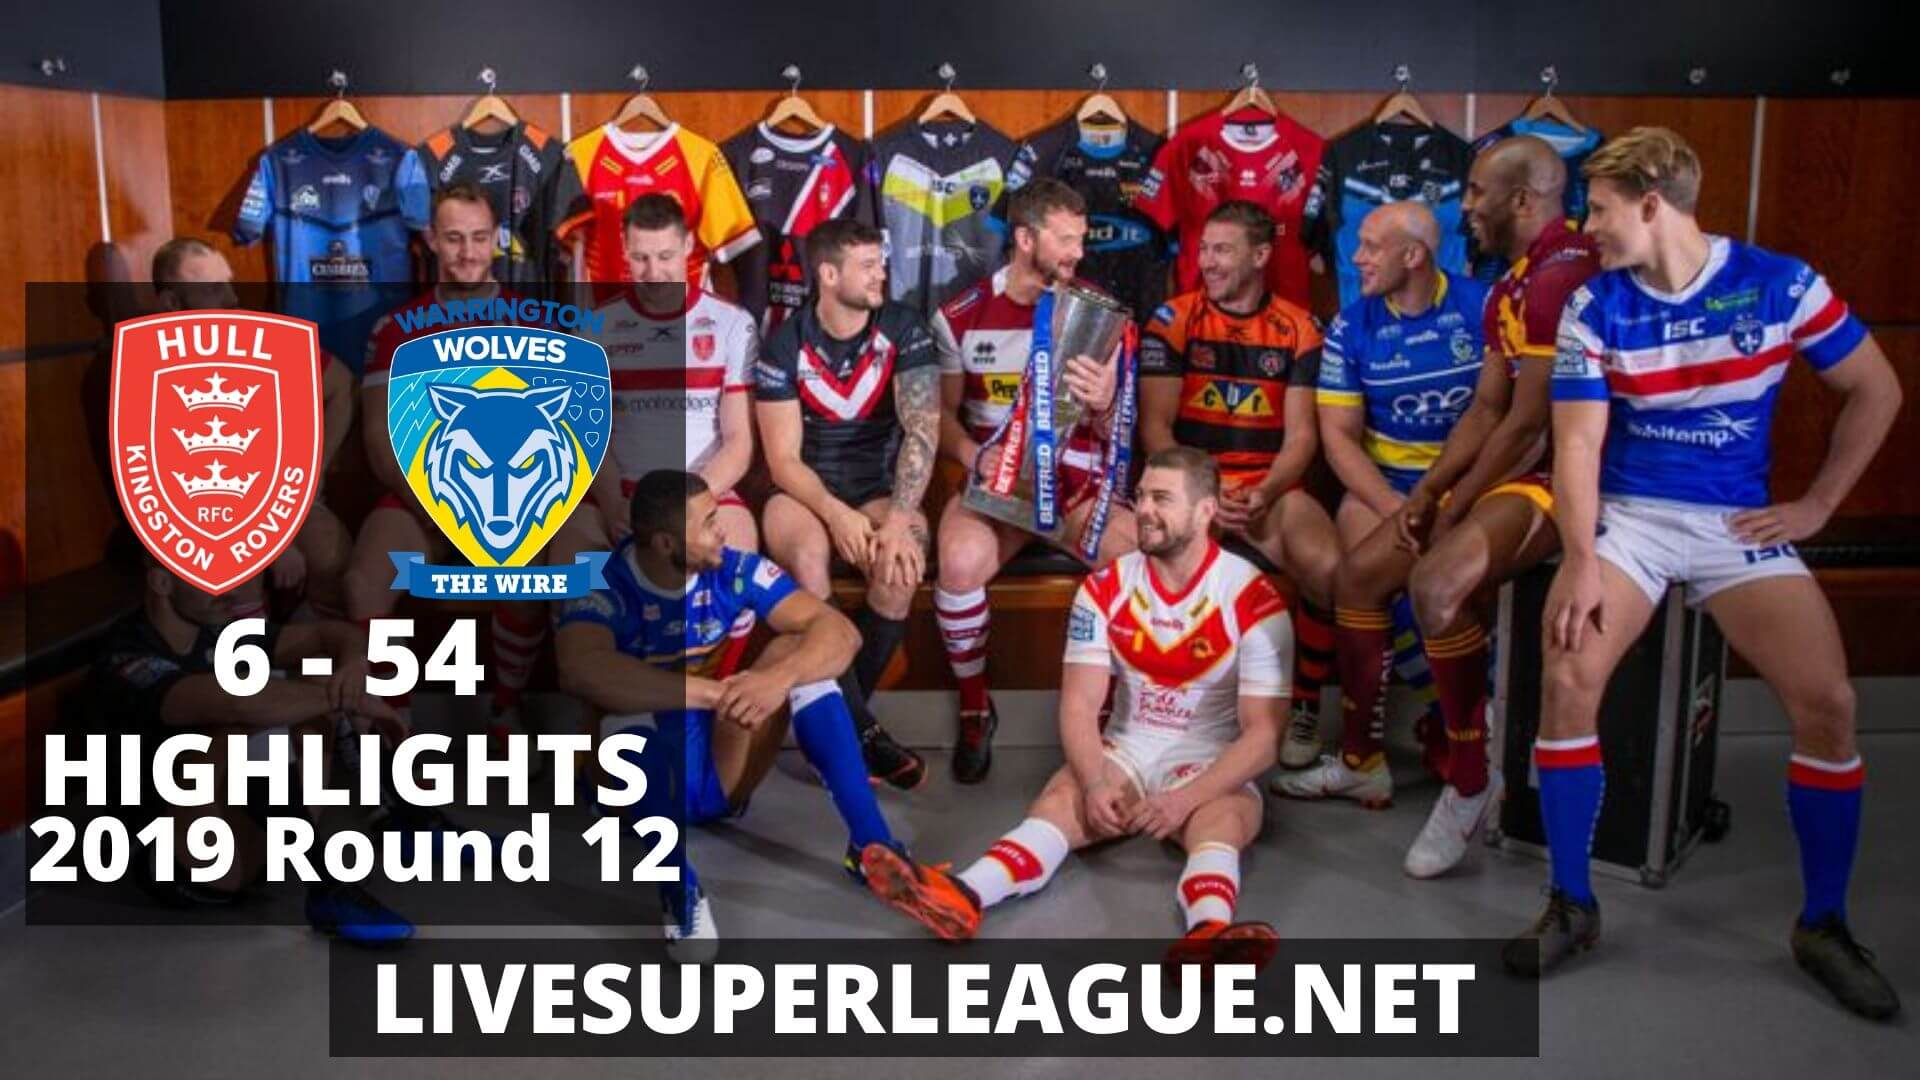 Hull Kingston Rovers Vs Warrington Wolves Highlights 2019 Round 12